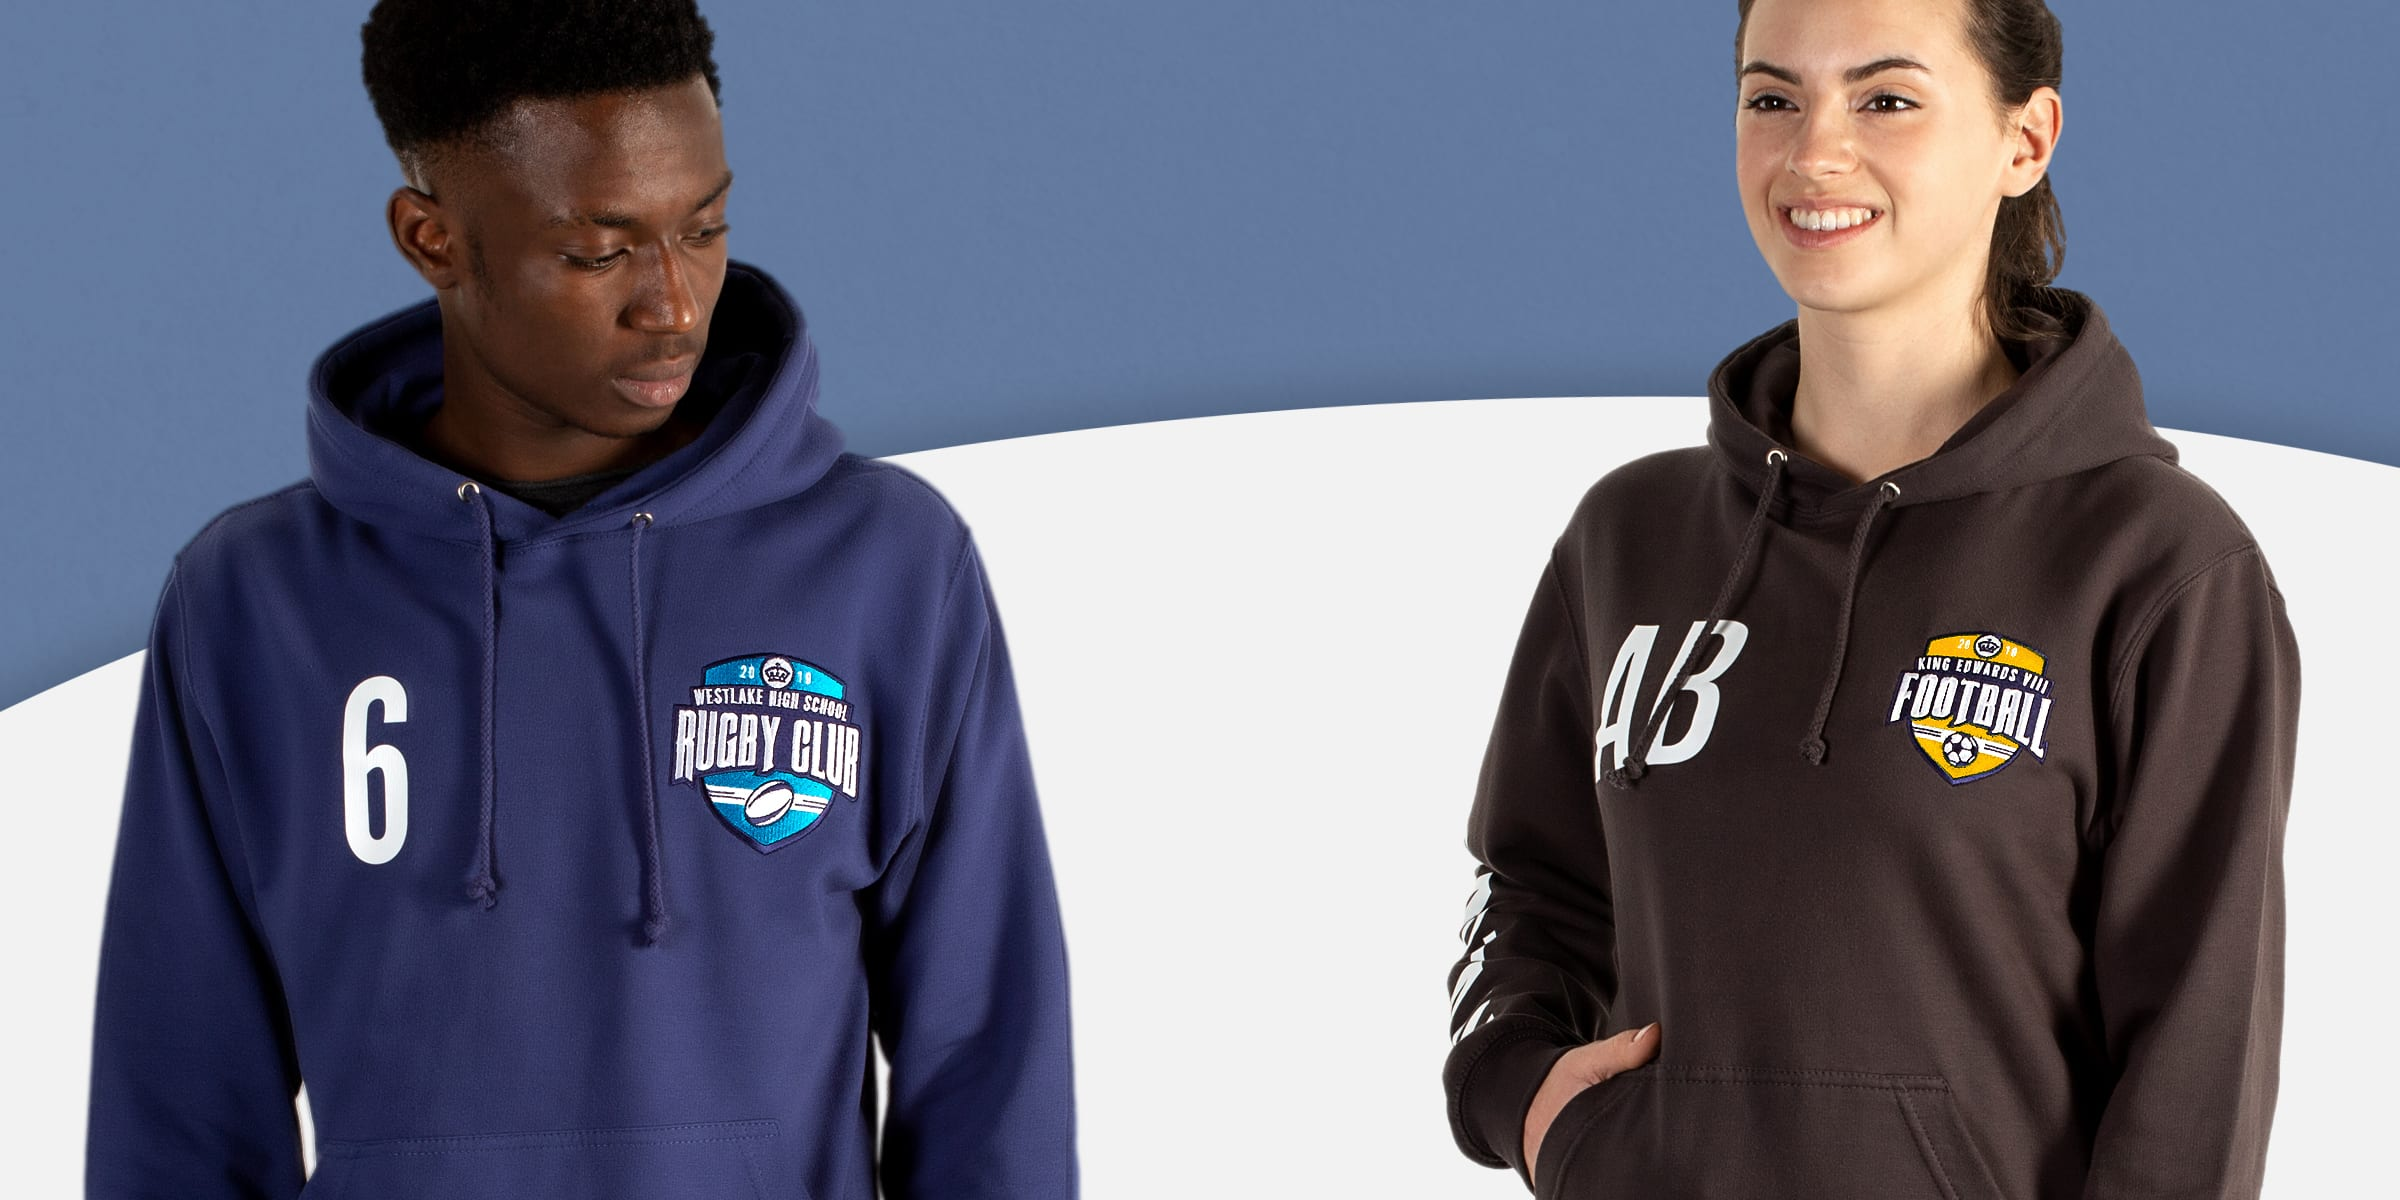 Sports teamwear hoodies and sweatshirts with names e02421fea024